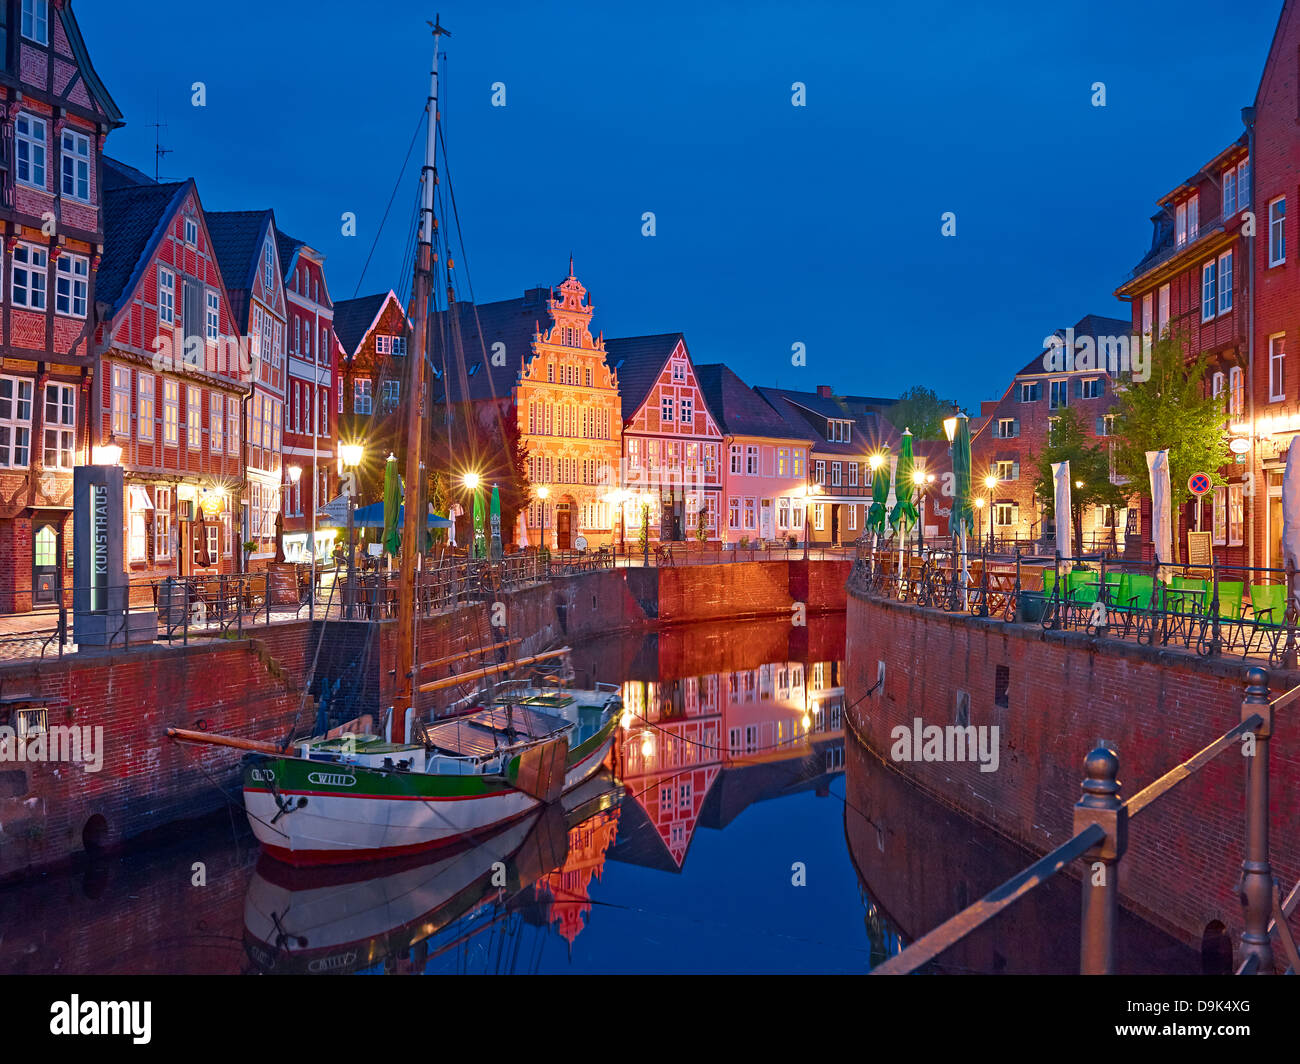 Houses at Old Hanse harbour of the Hanseatic city of Stade, Lower Saxony, Germany - Stock Image